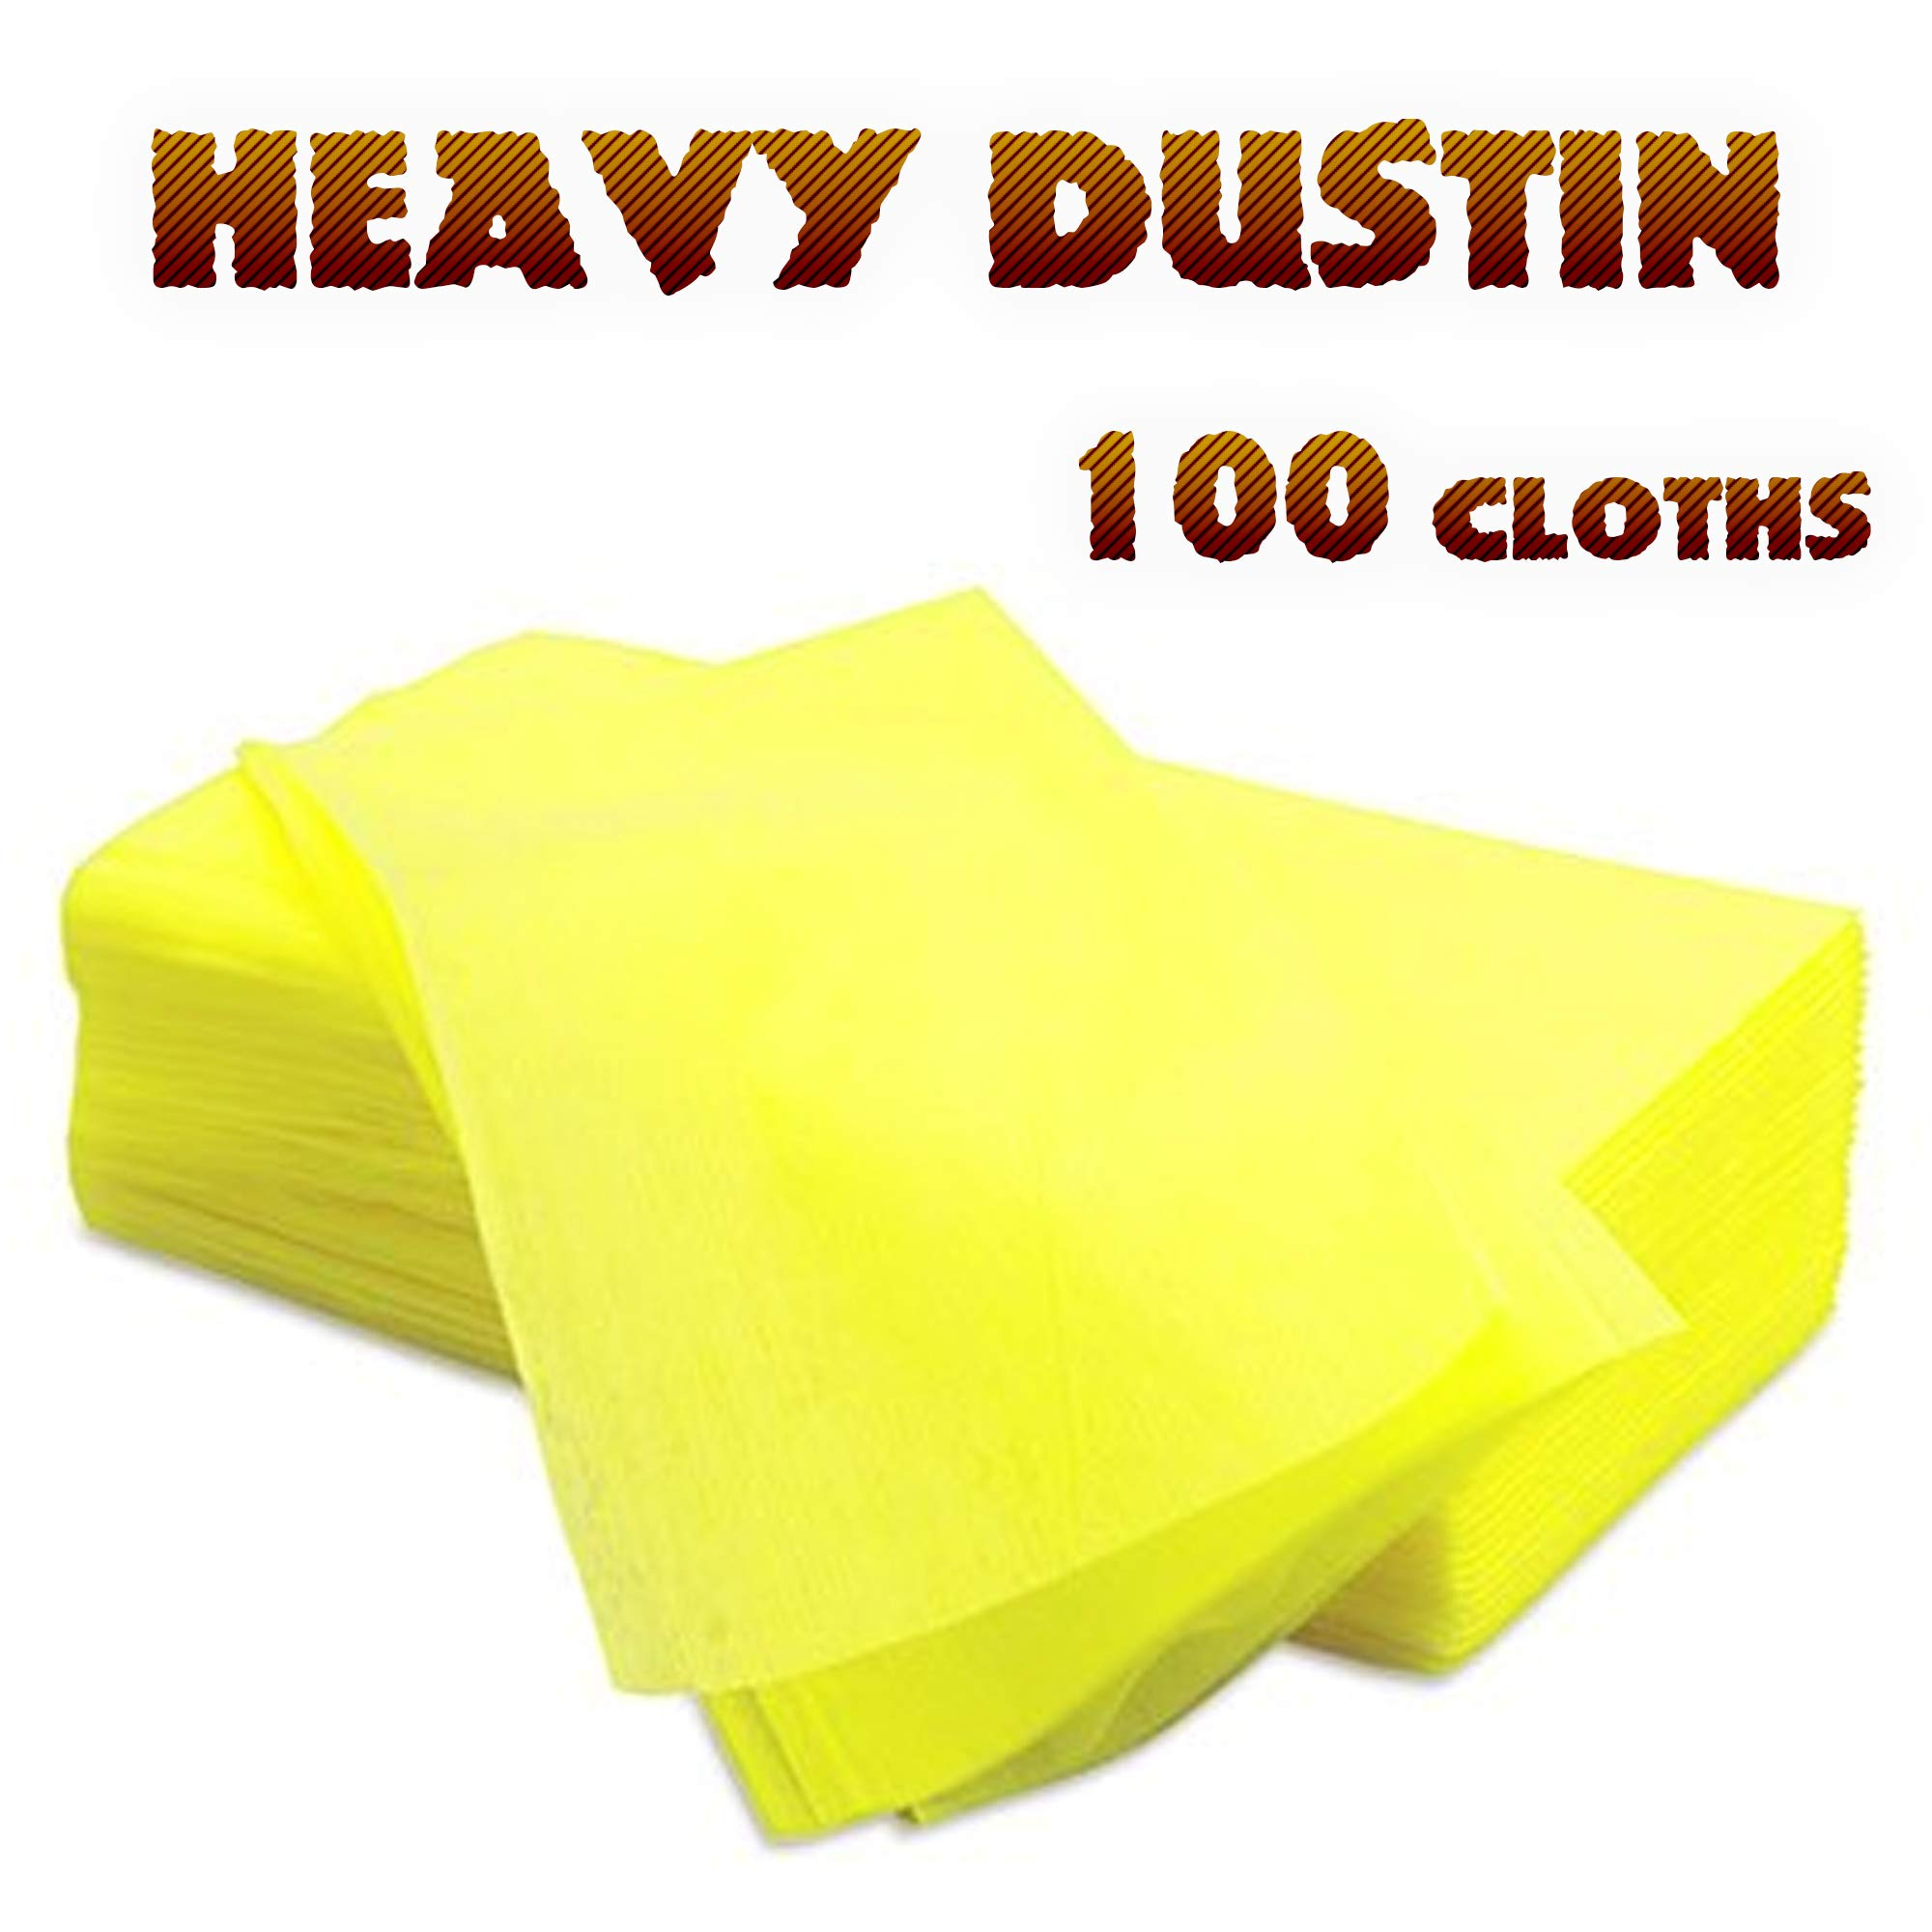 100 Dust Cloths - Disposable Treated Dusting Cloth - 2 Packs of 50 Cleaning Wipes by Heavy Dustin